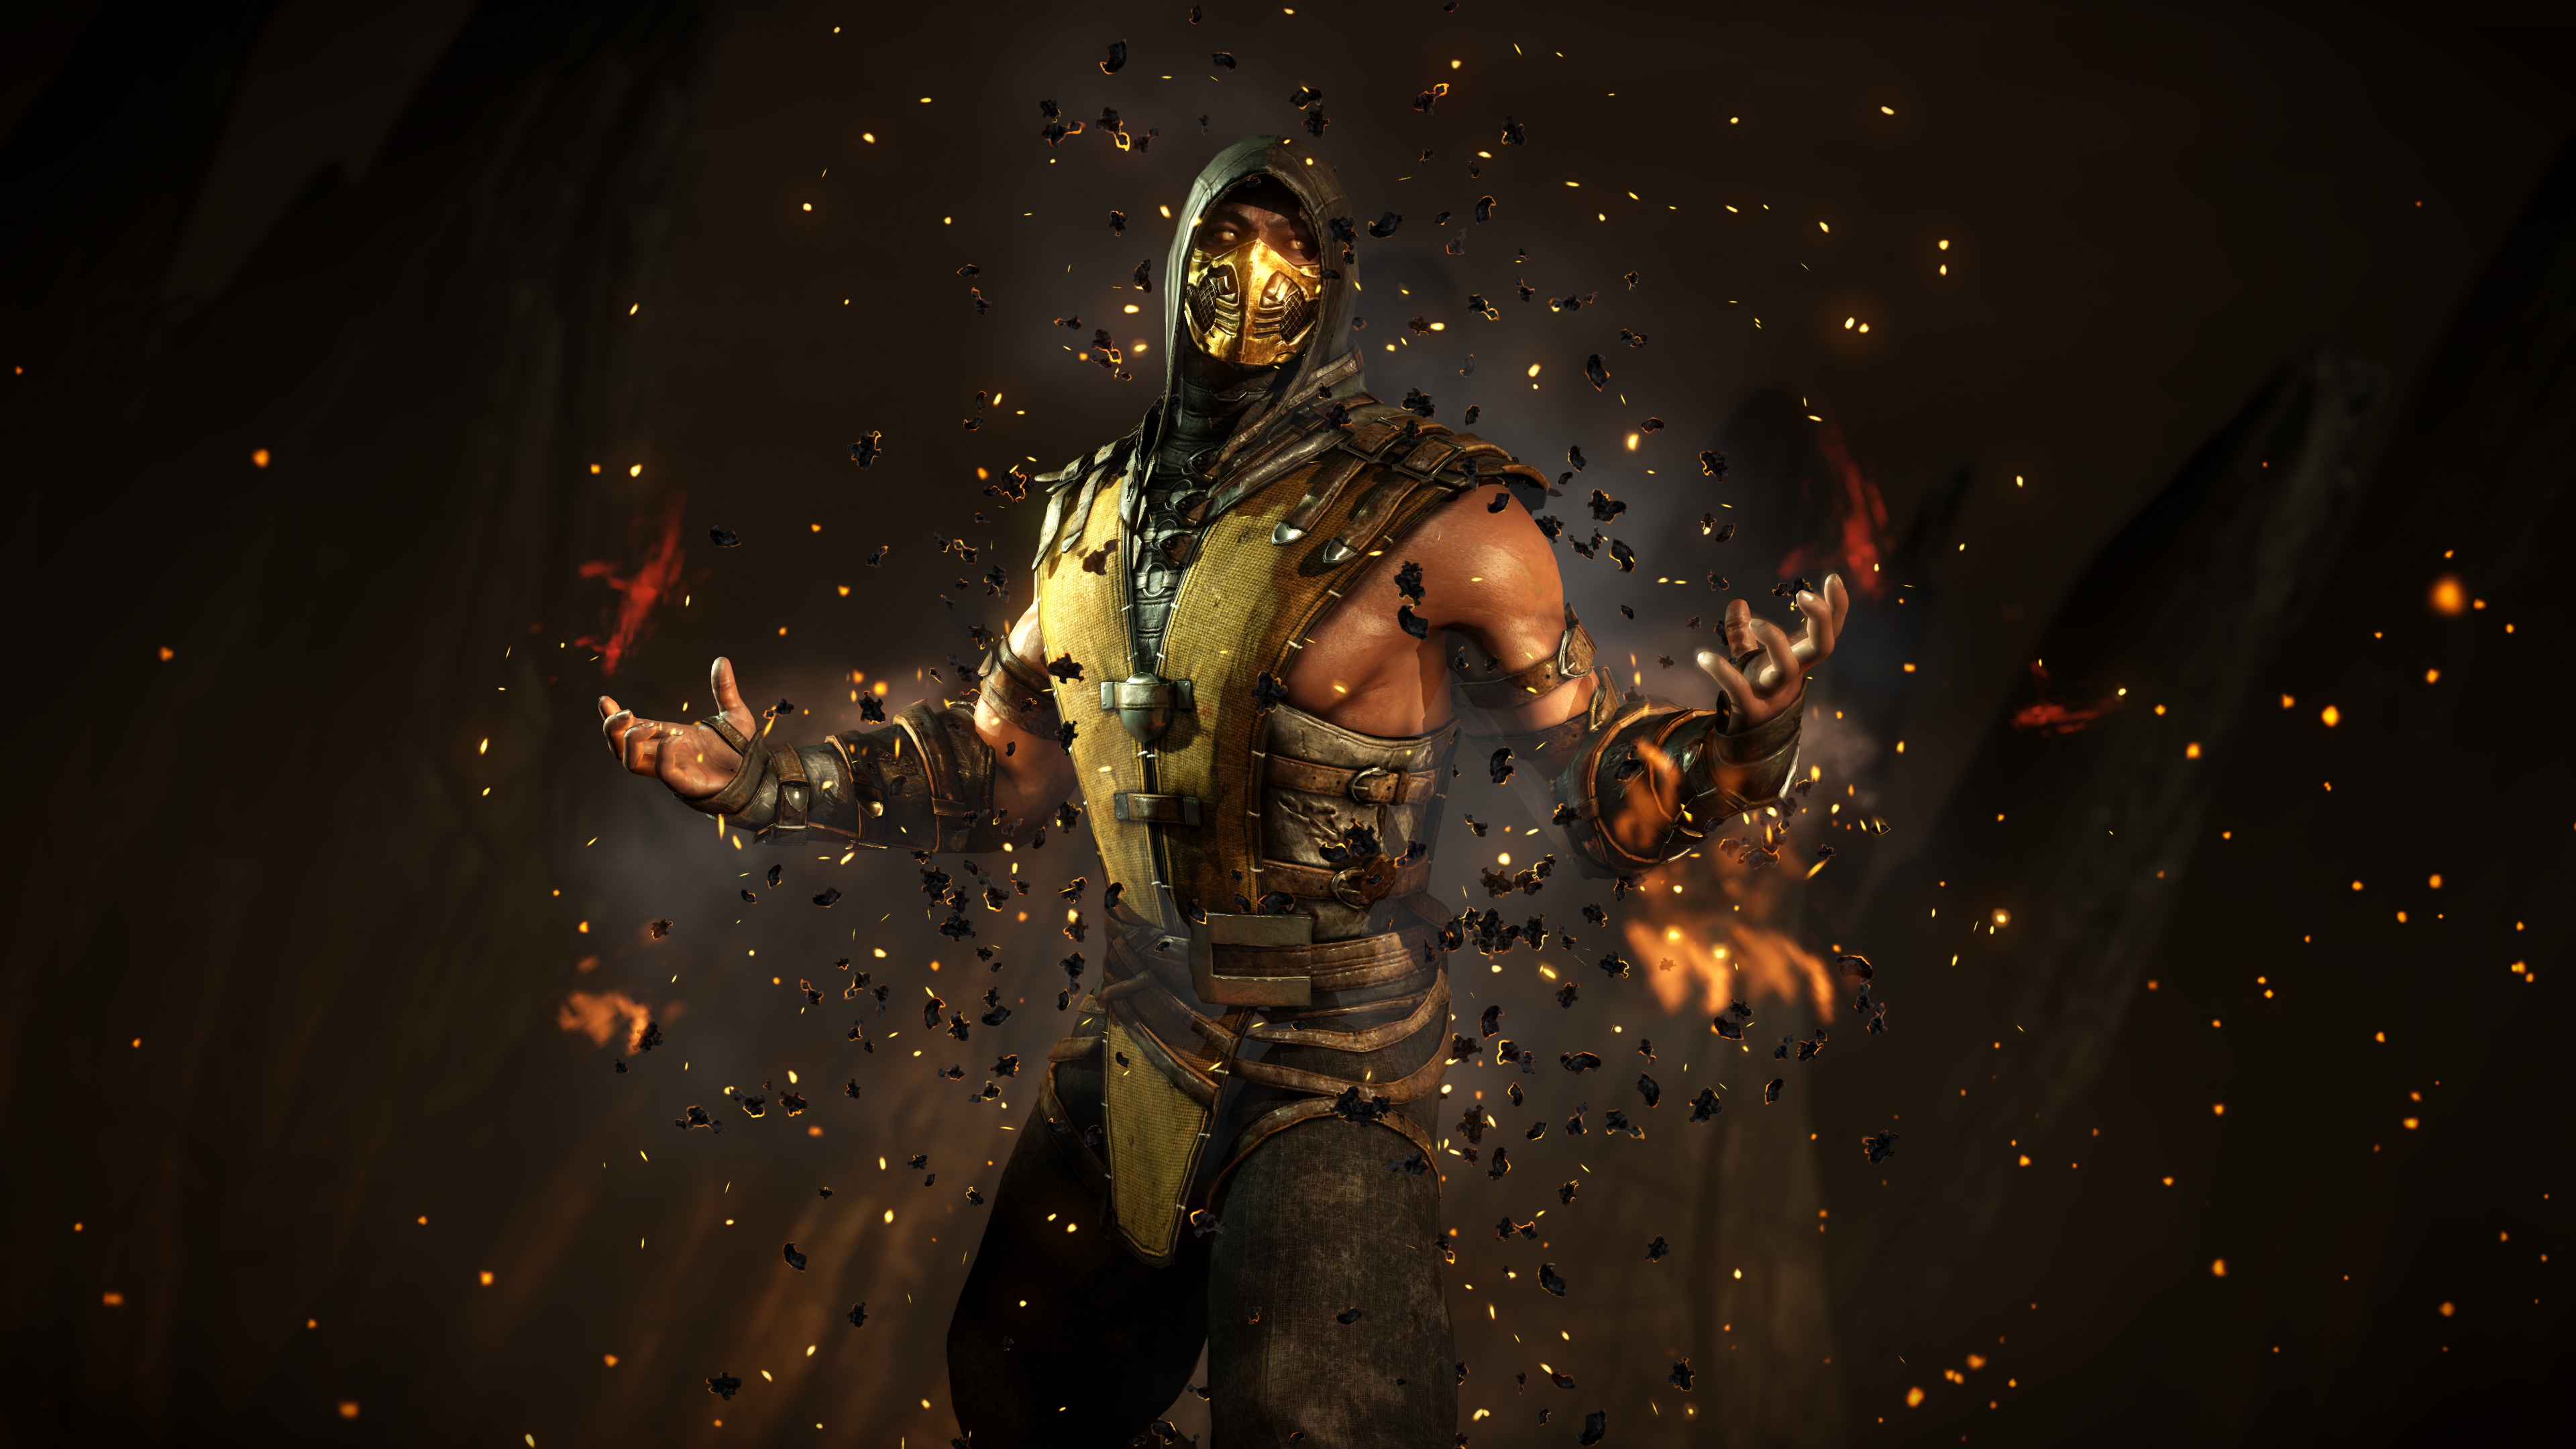 Mortal Kombat 4k Ultra Hd Wallpaper And Background Image: Scorpion Mortal Kombat X 4k, HD Games, 4k Wallpapers